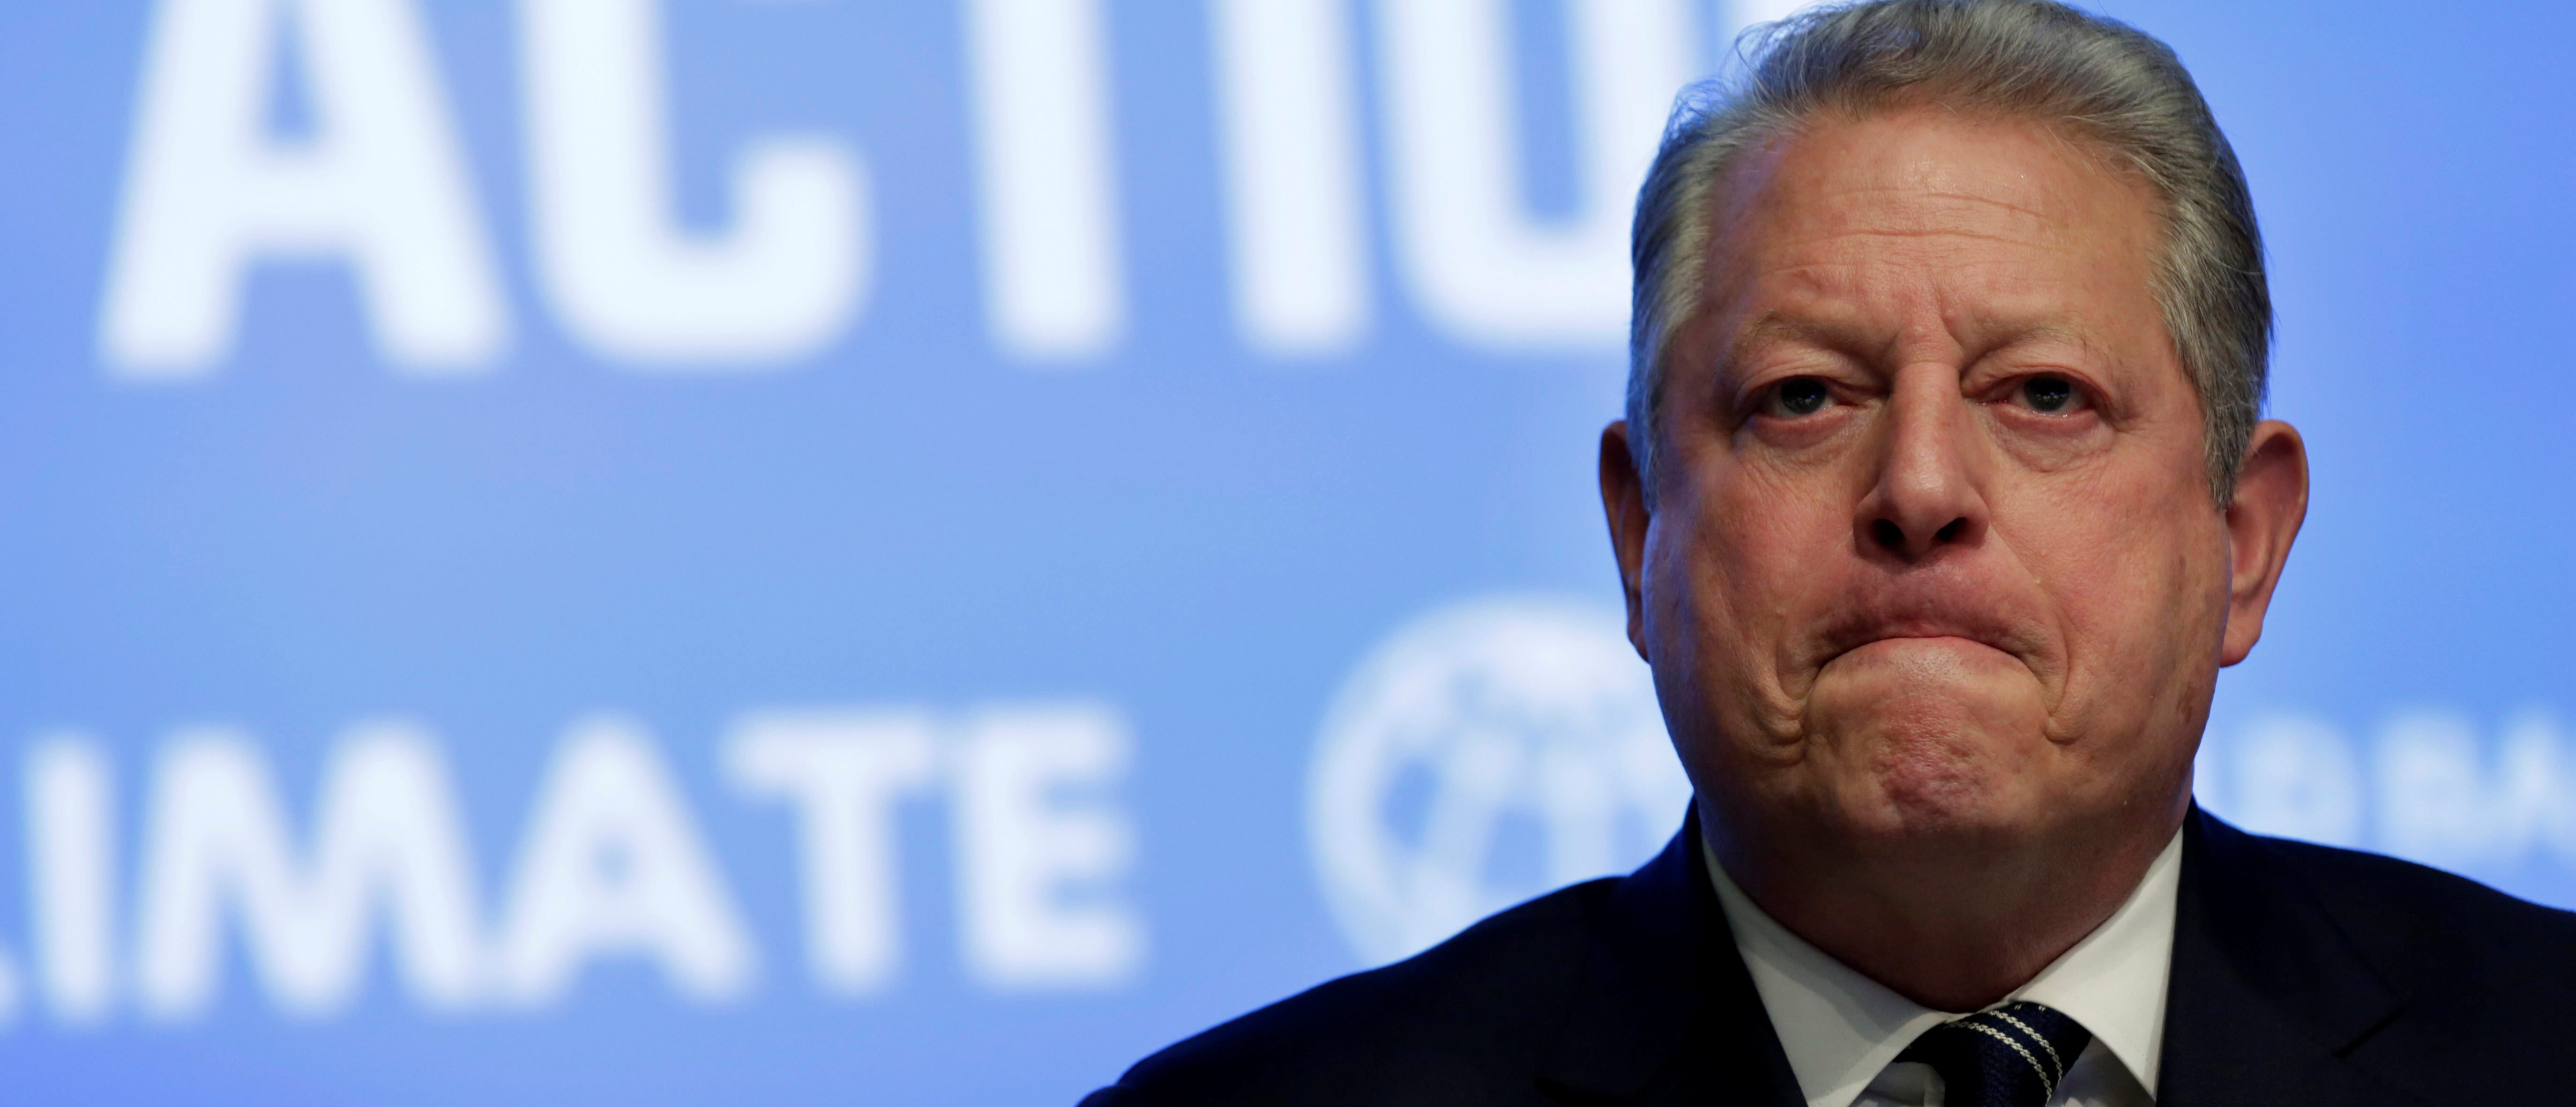 Former U.S. Vice President Al Gore attends Unlocking Financing for Climate Action session during the IMF/World Bank spring meetings in Washington, U.S., April 21, 2017. REUTERS/Yuri Gripas - RC15A2B1DE70